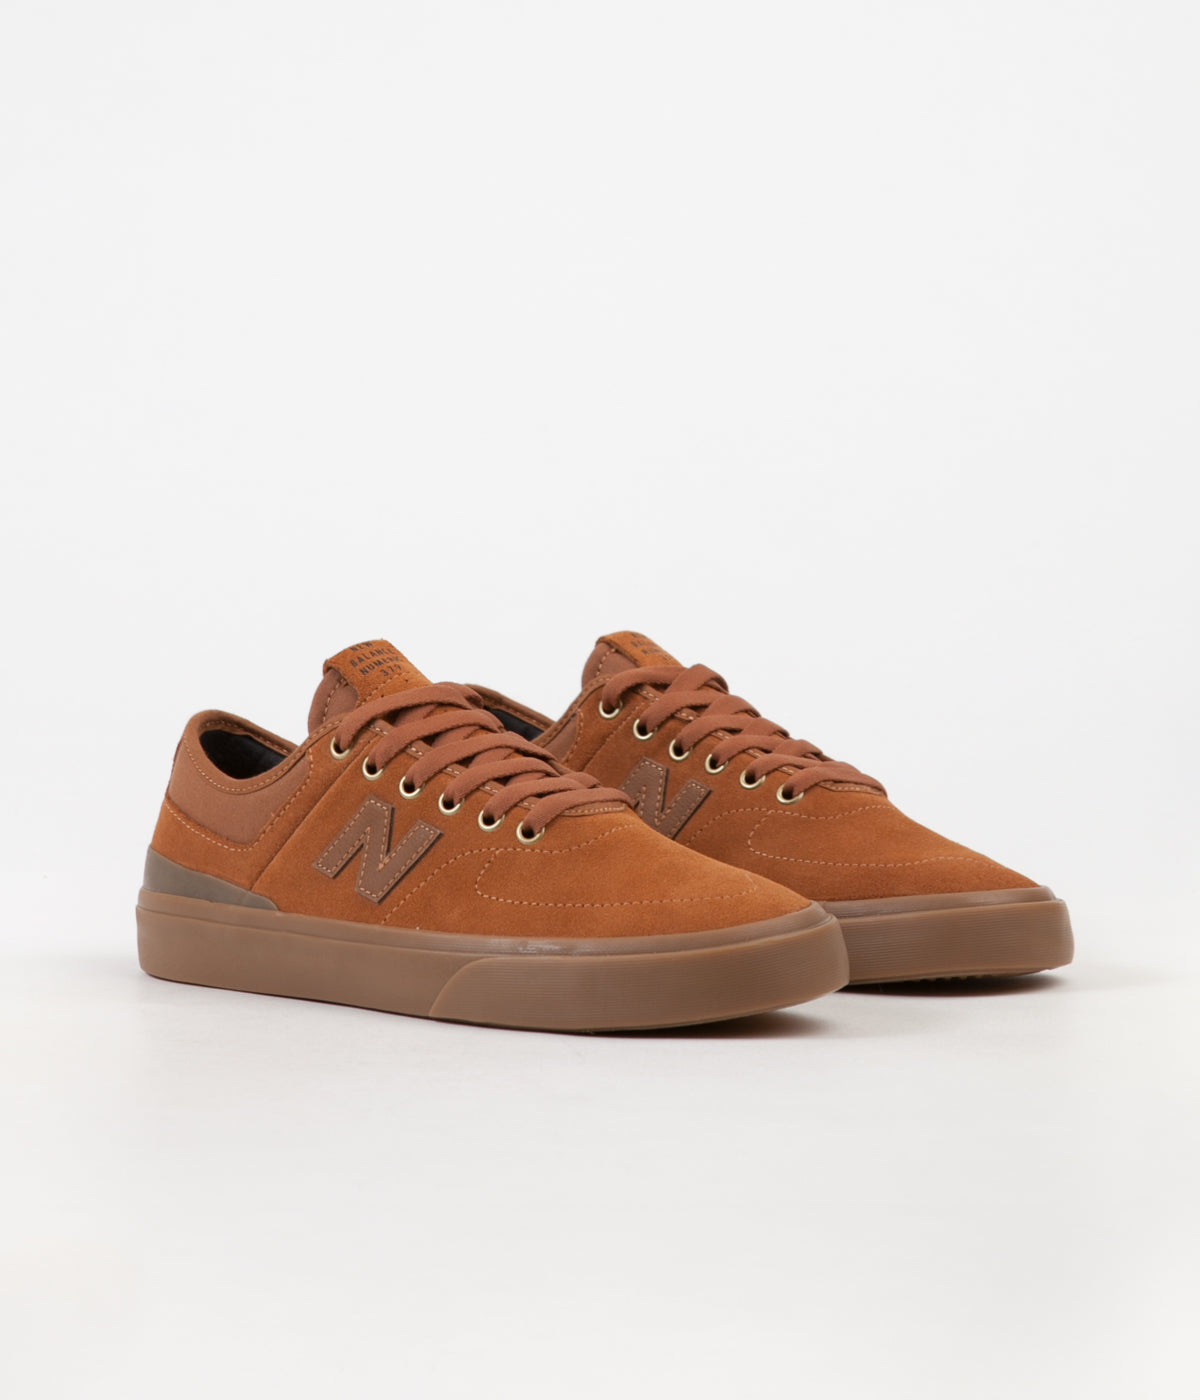 New Balance Numeric 379 Shoes - Brown / Gum - Jake Hayes